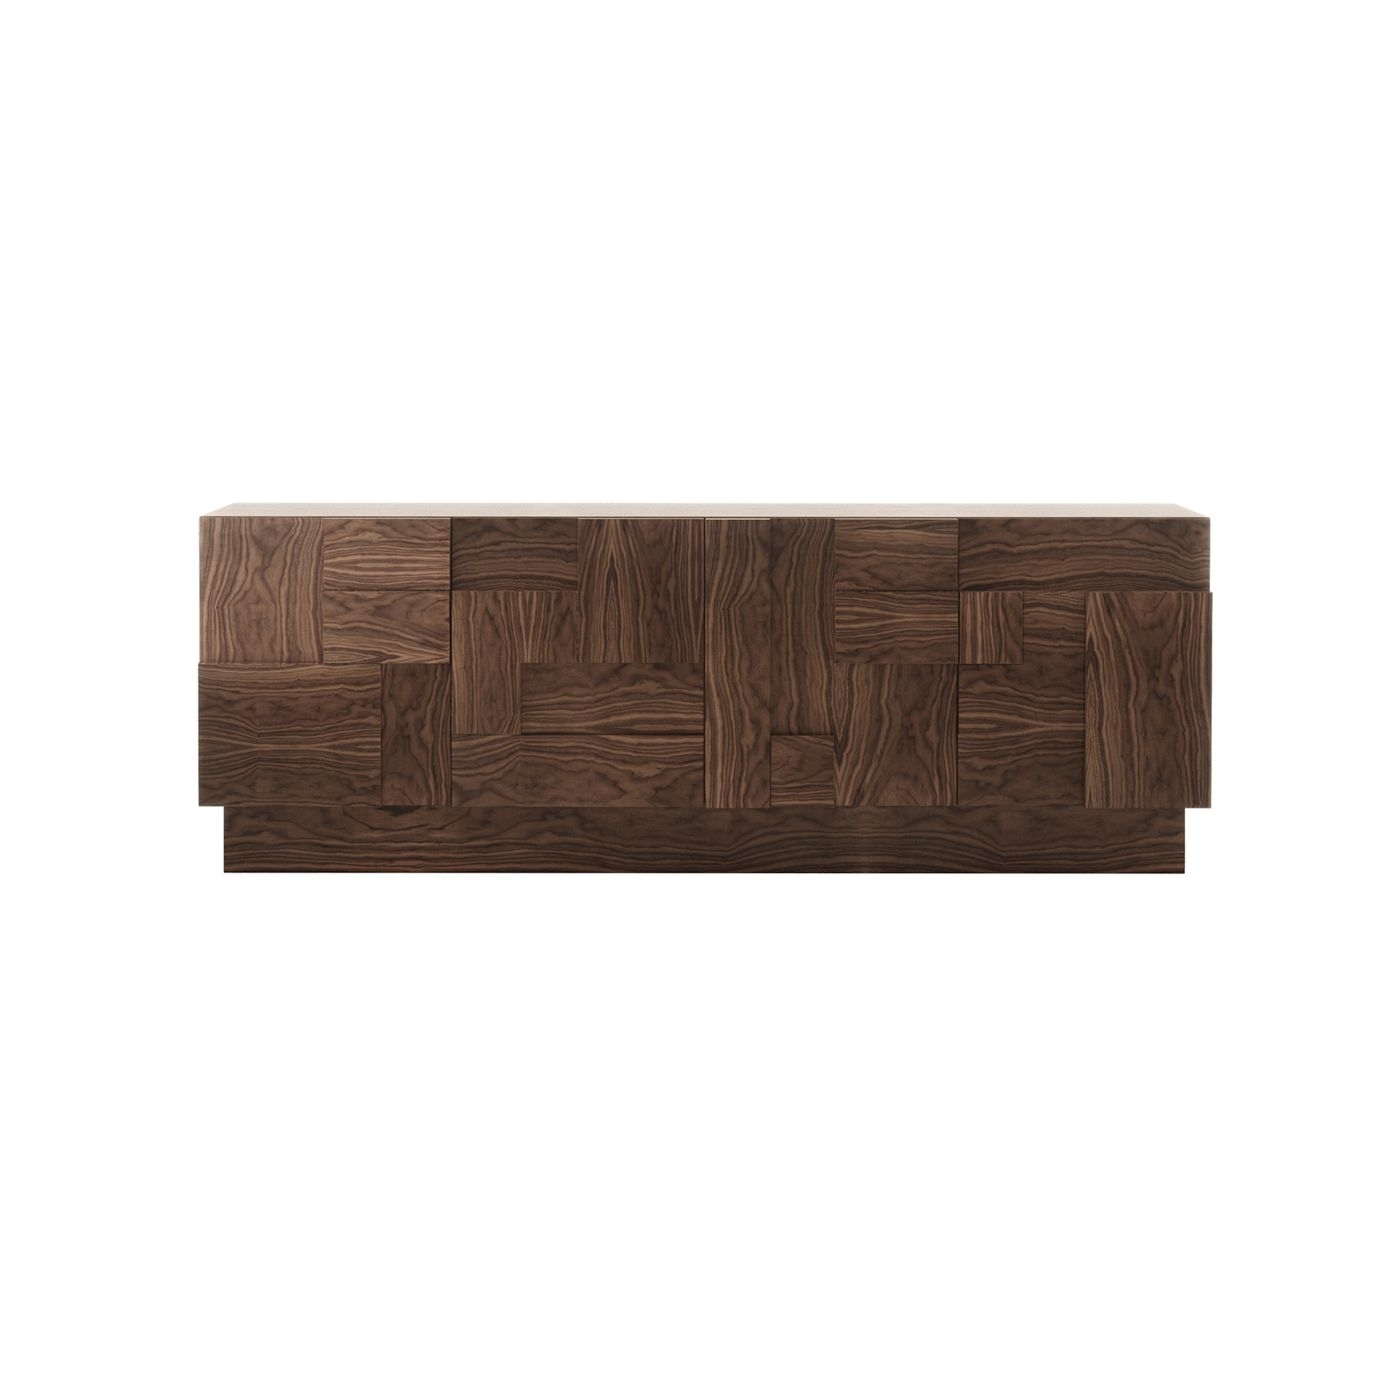 Inspiration about Laskasas | Decorar A Vida This Stunning Wooden Sideboard Has Four Intended For 2018 Ironwood 4 Door Sideboards (#6 of 20)